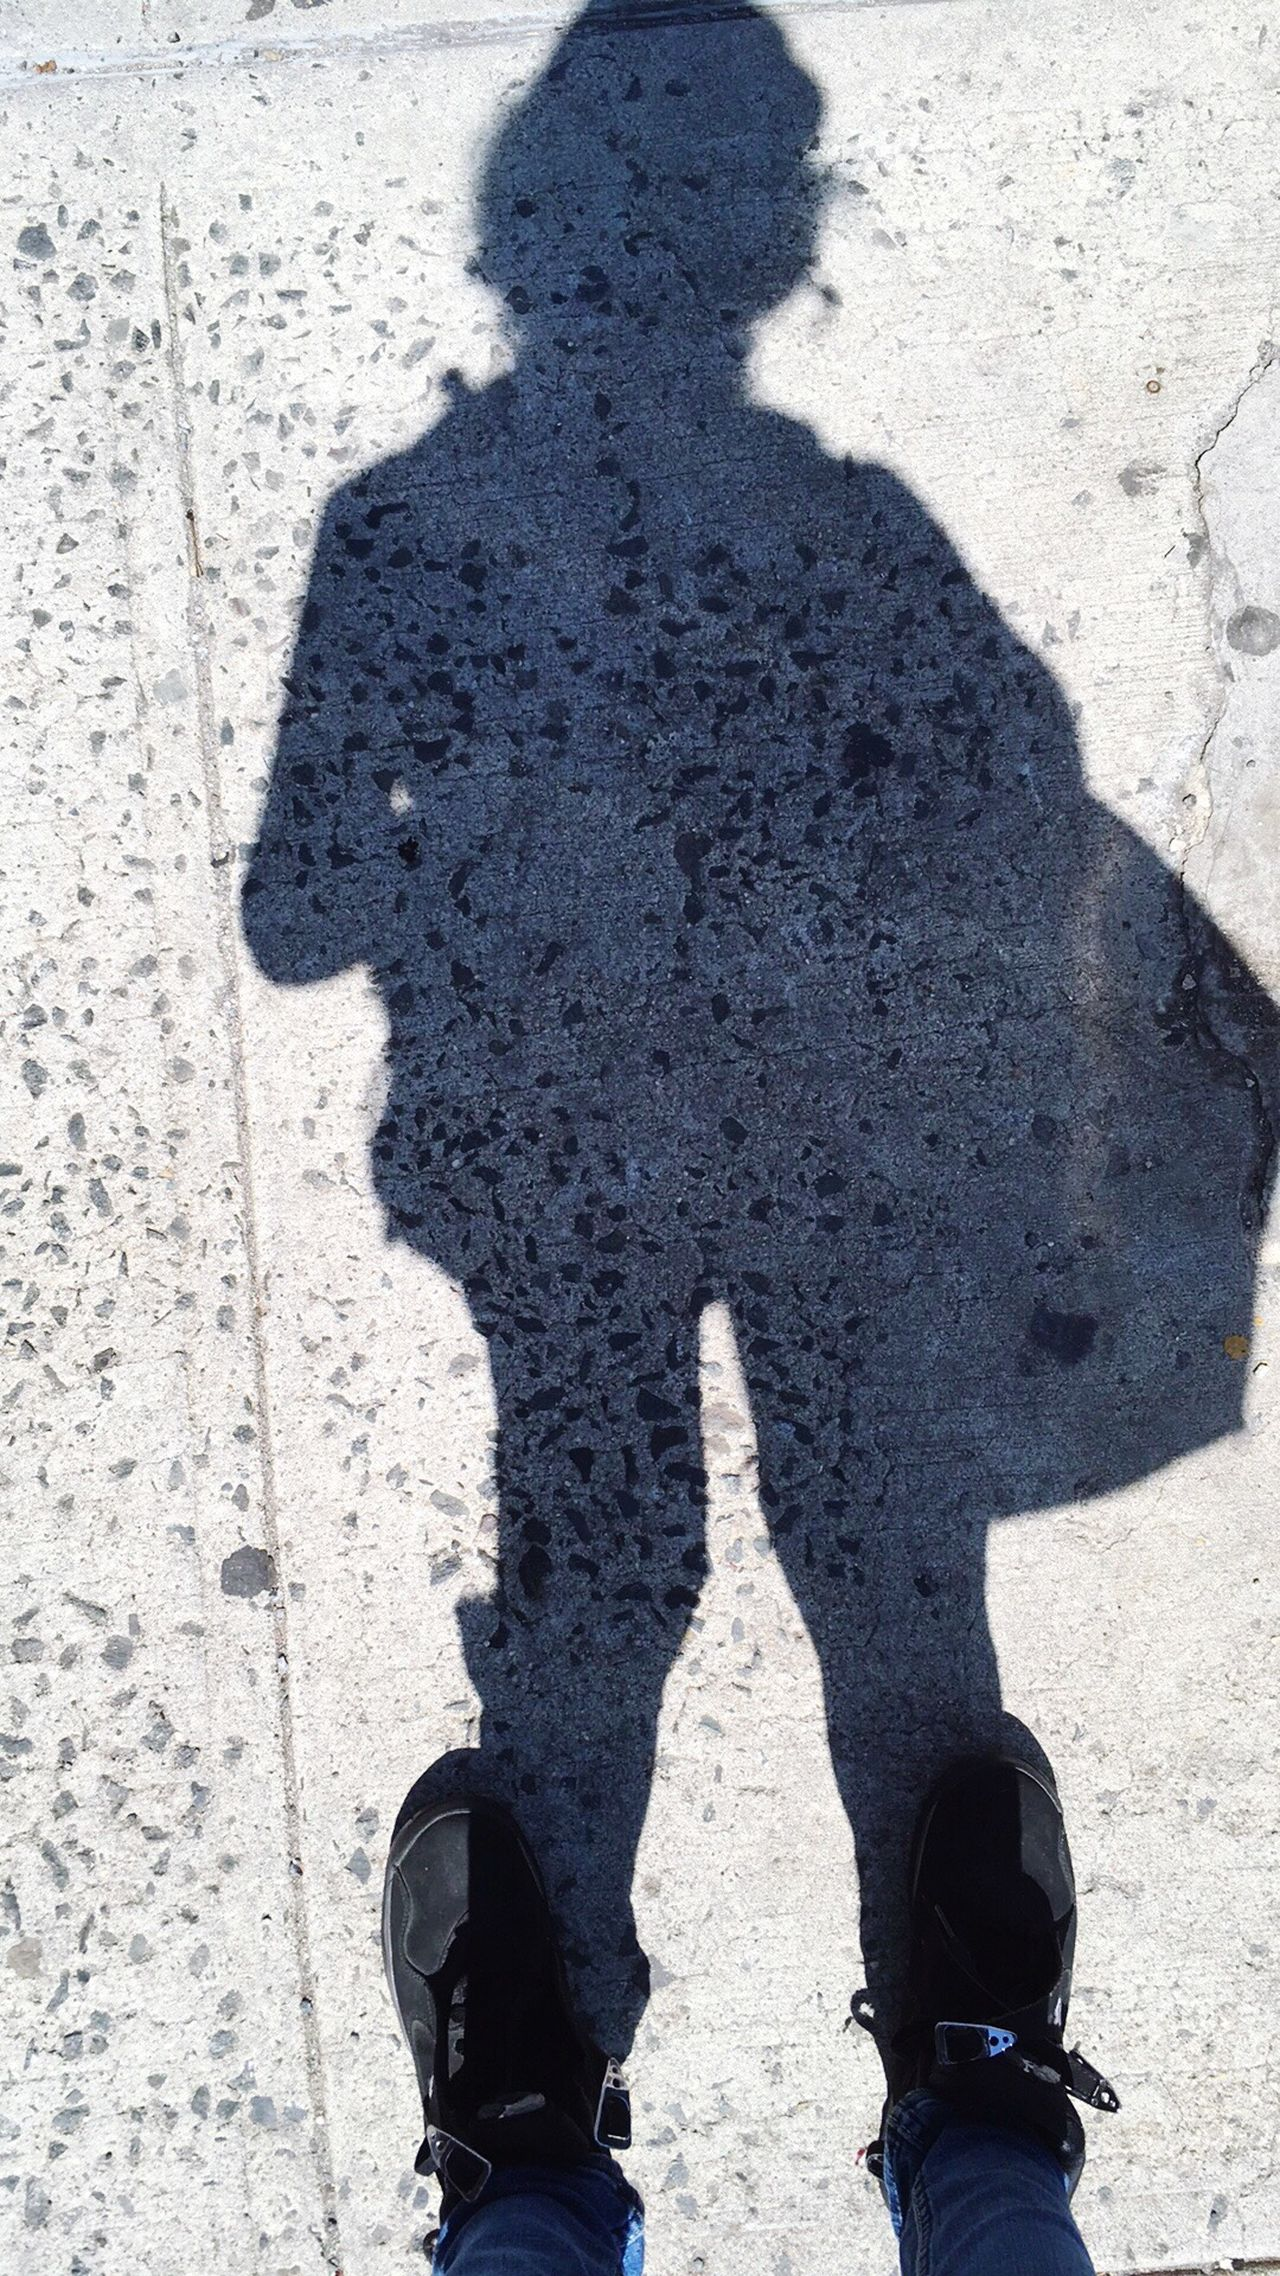 Me and my shadow. Shadow Lifestyles NYC Street Photography Bronx New York  NYC LIFE ♥